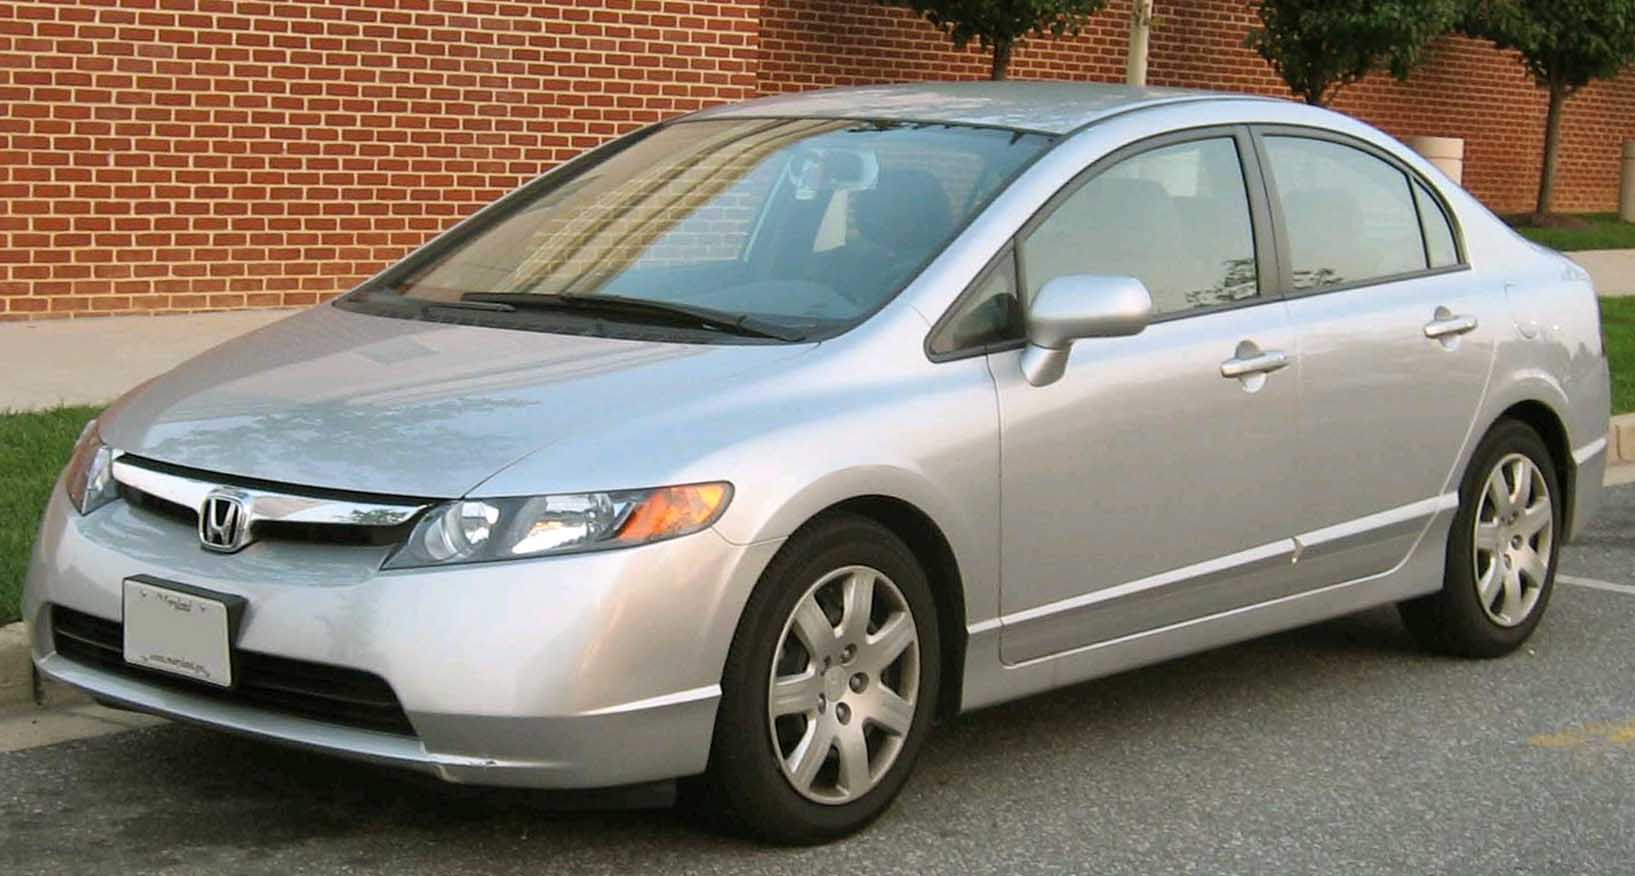 07 Honda Civic LX